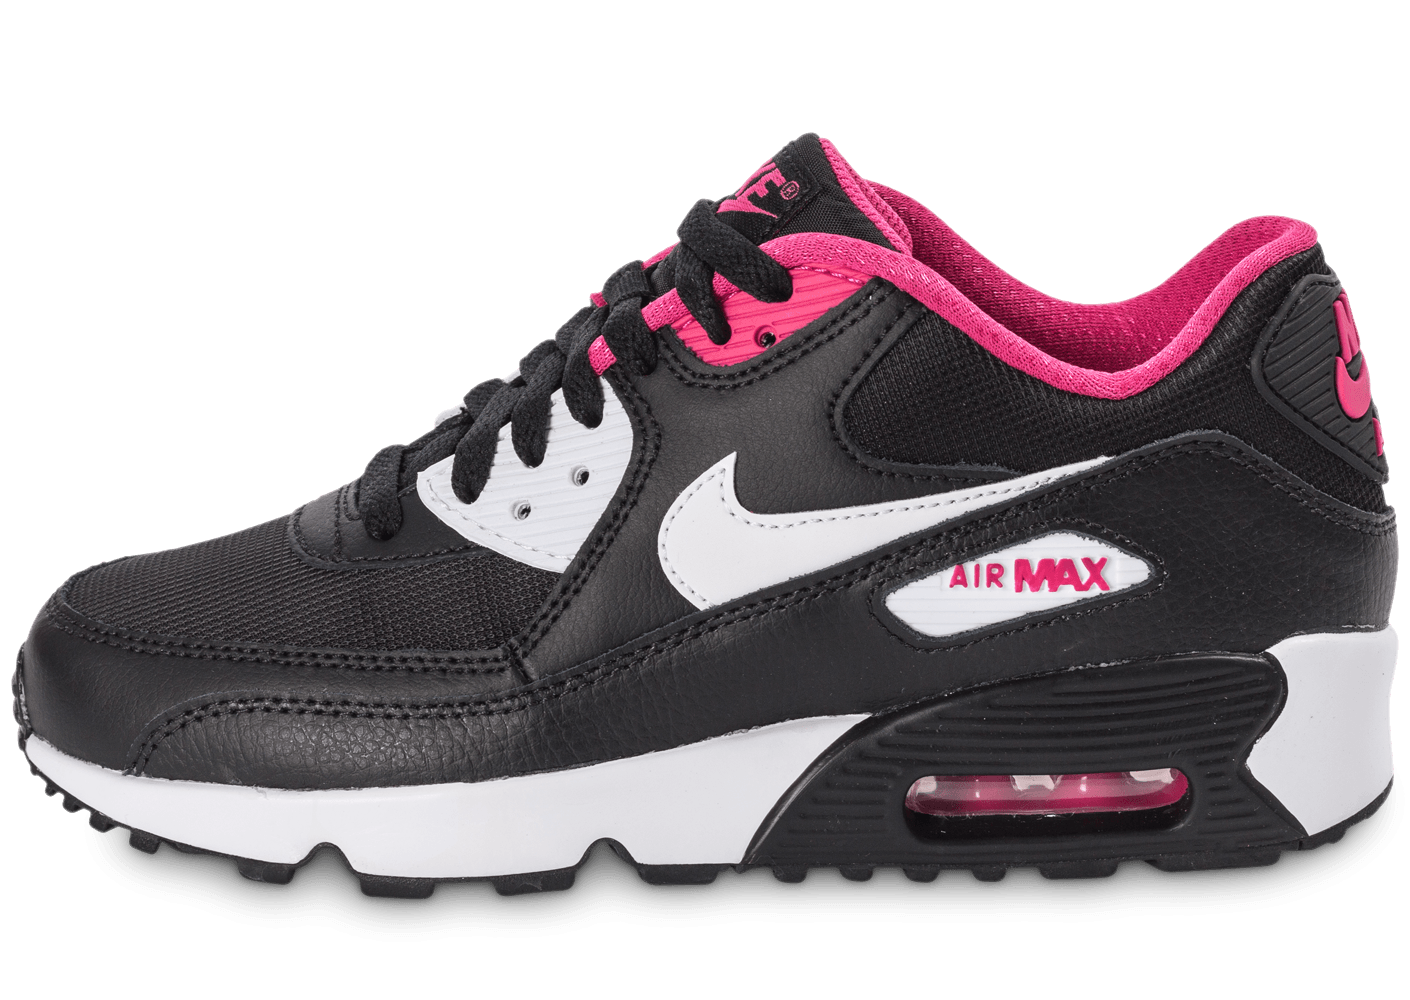 nike air max 90 mesh junior noir et rose chaussures toutes les baskets sold es chausport. Black Bedroom Furniture Sets. Home Design Ideas